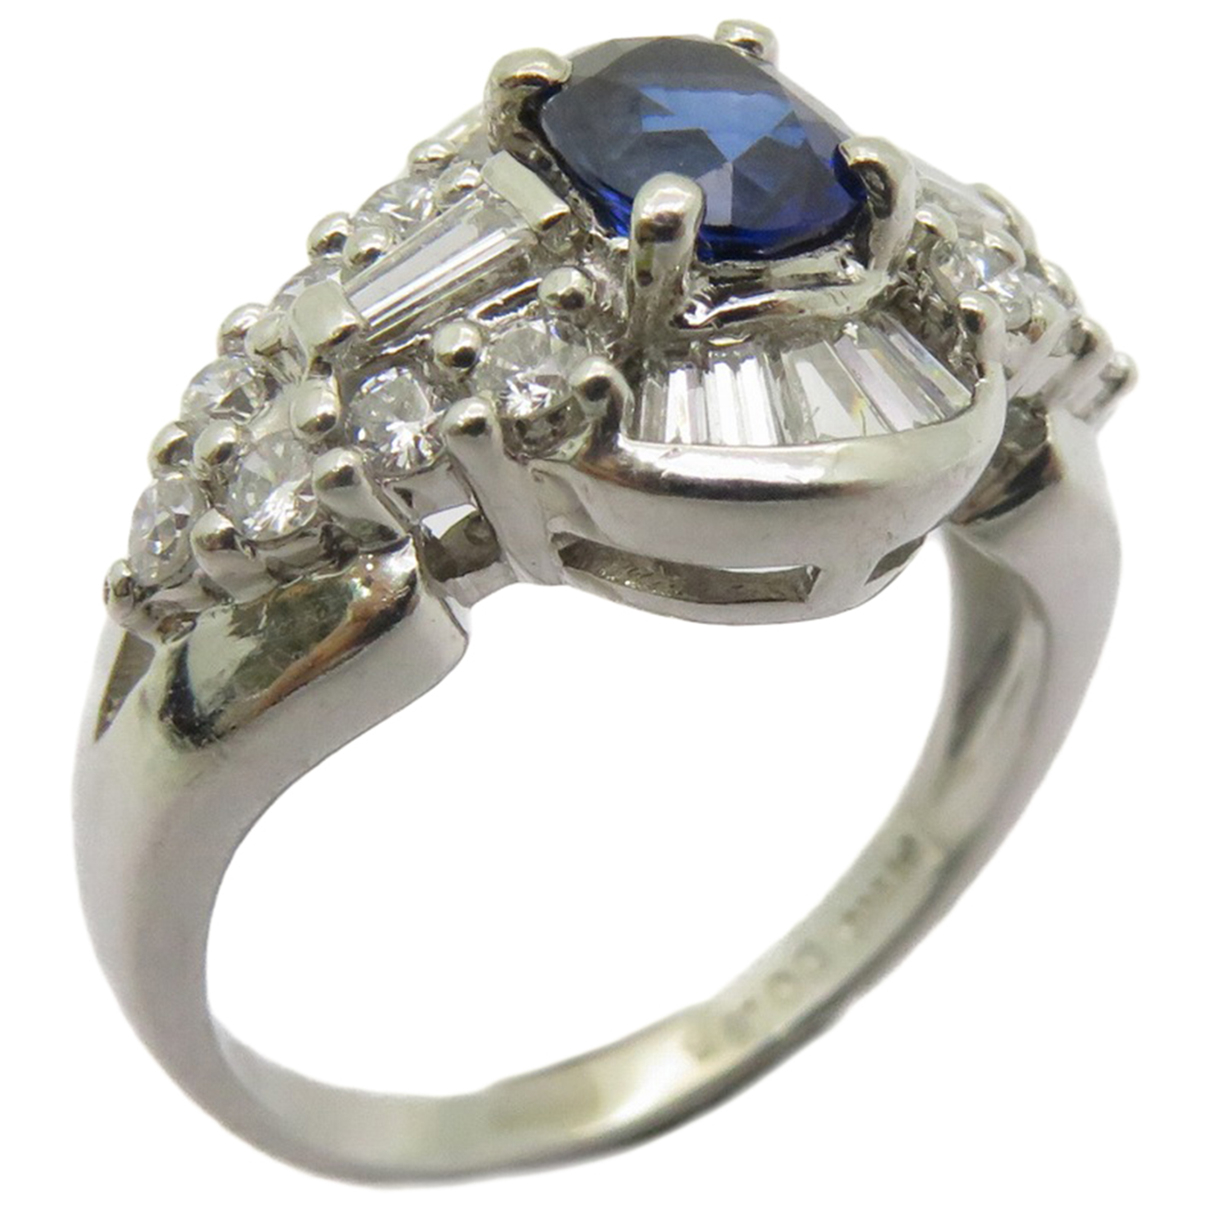 Non Signe / Unsigned \N Ring in  Silber Platin